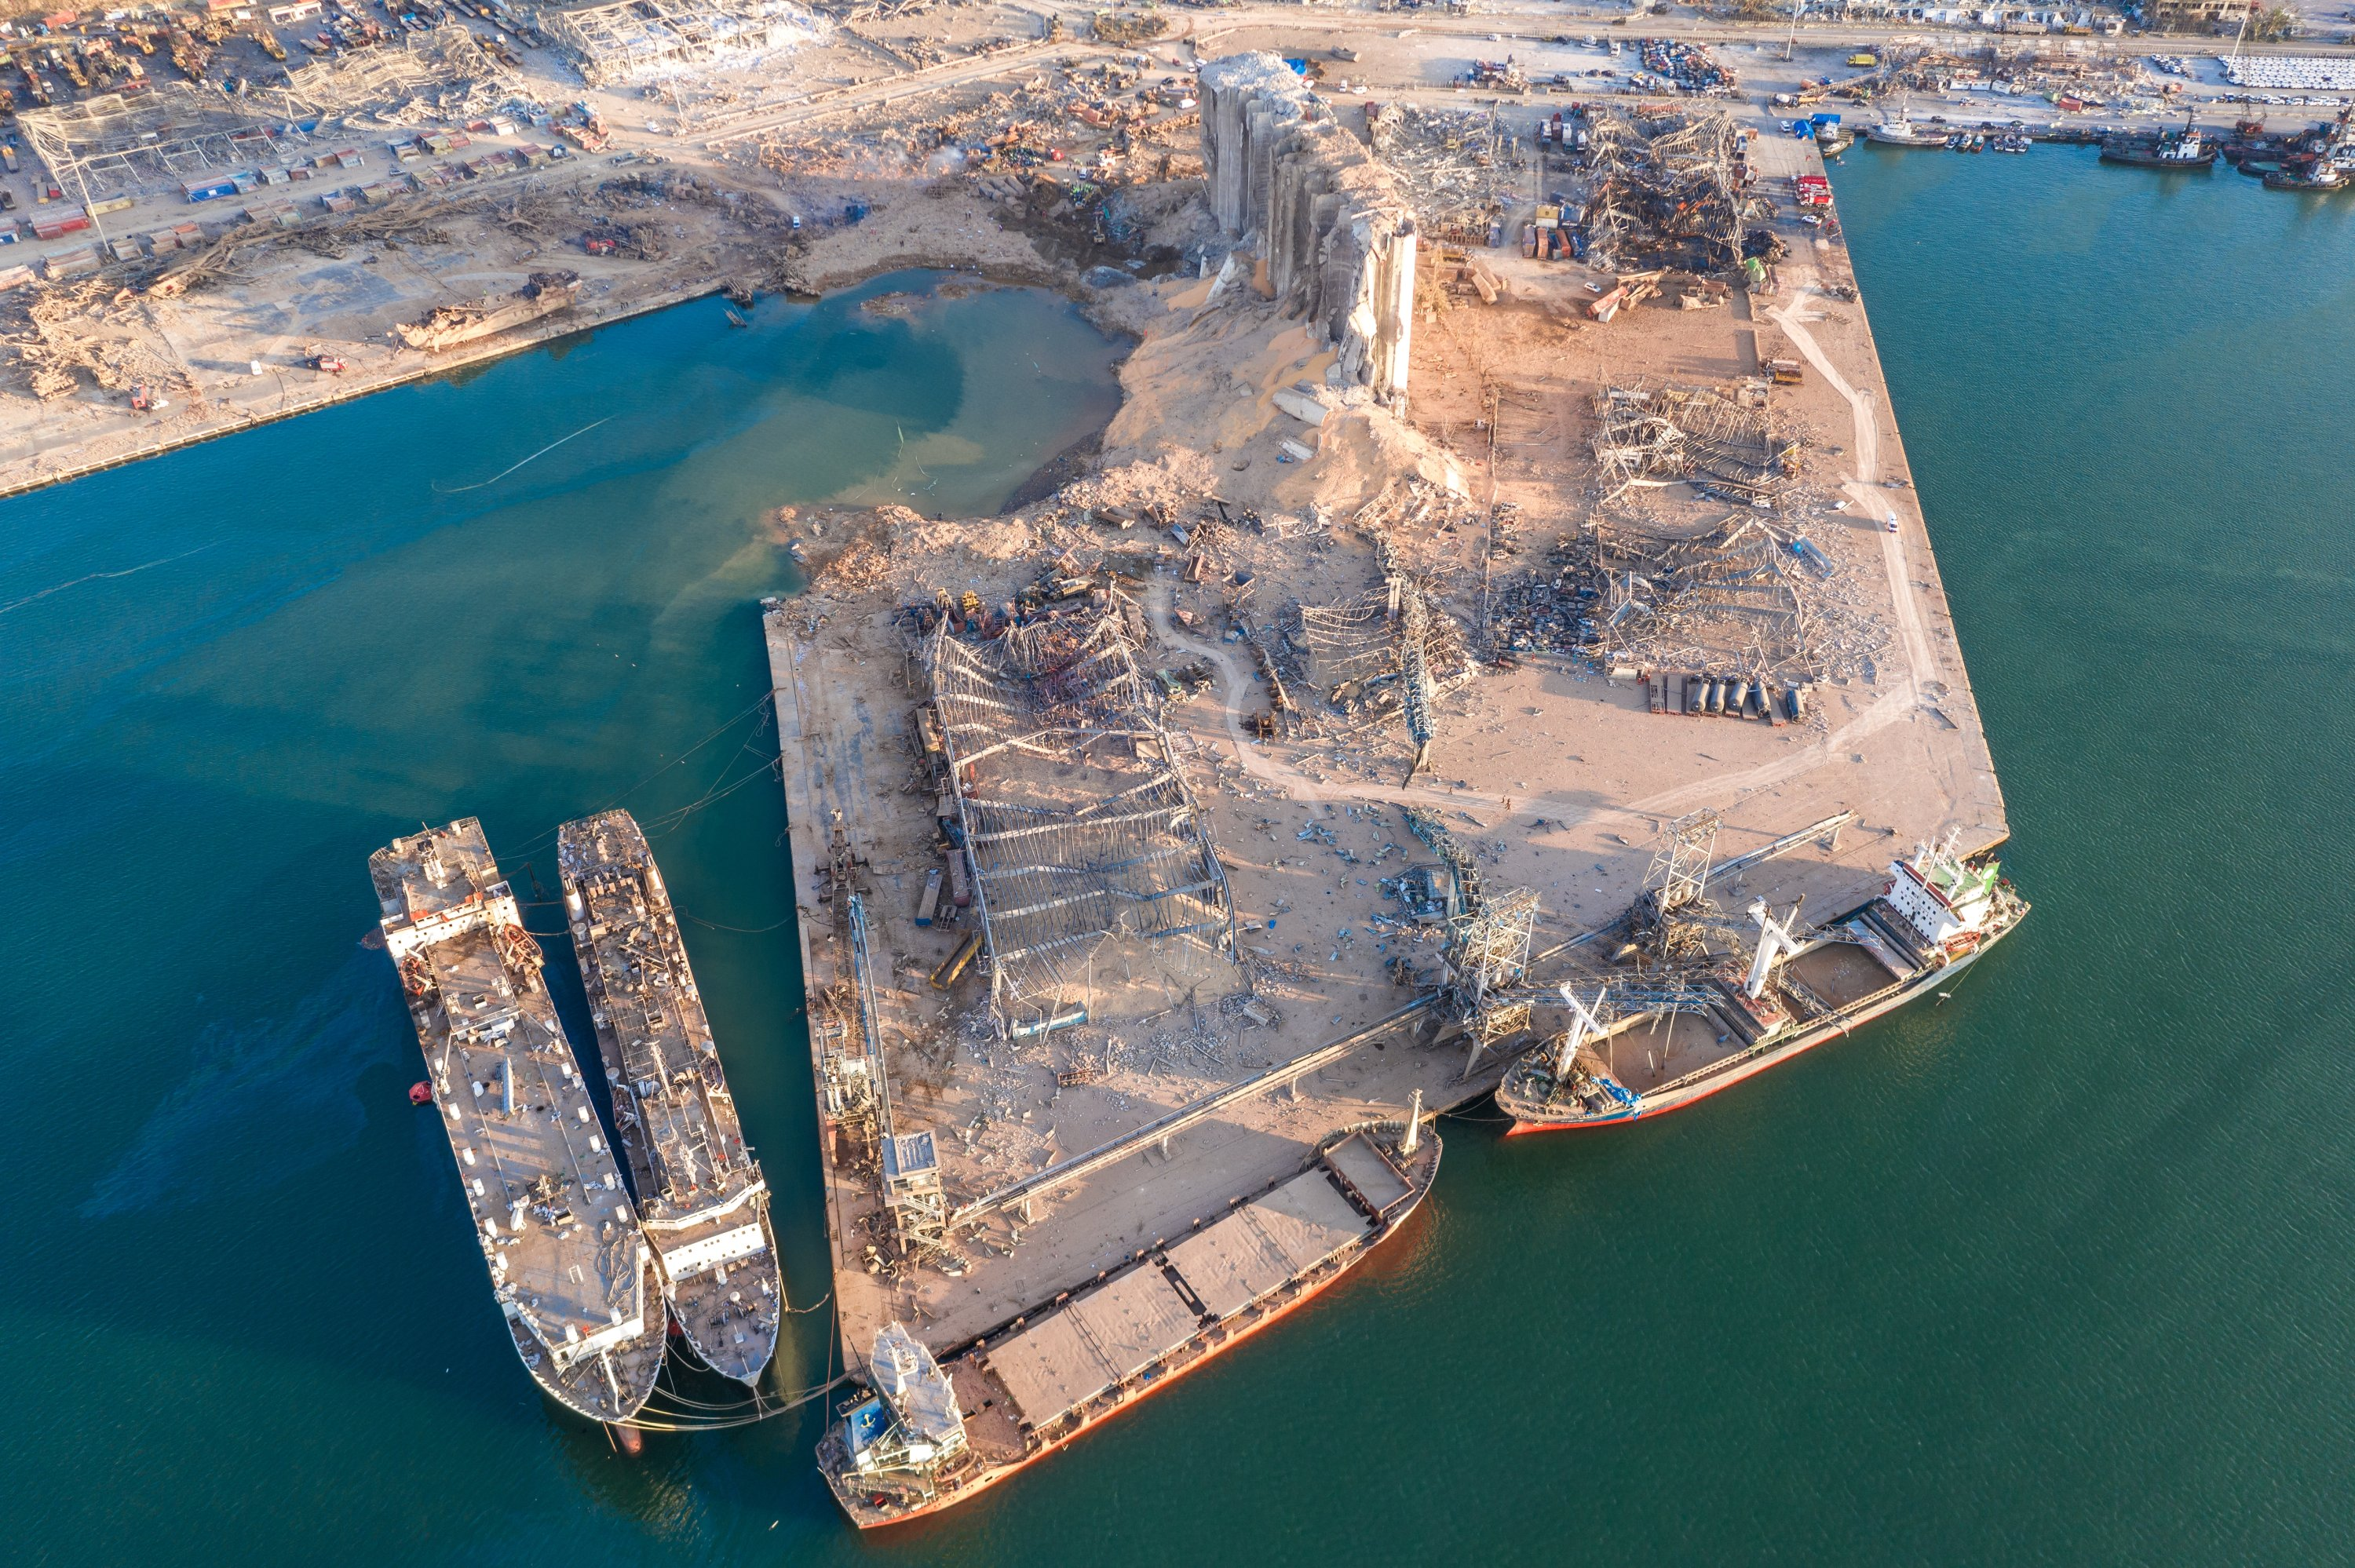 An aerial view of ruined structures at the port, damaged by an explosion a day earlier, Beirut, Lebanon, Aug. 5, 2020. (Photo by Getty Images)